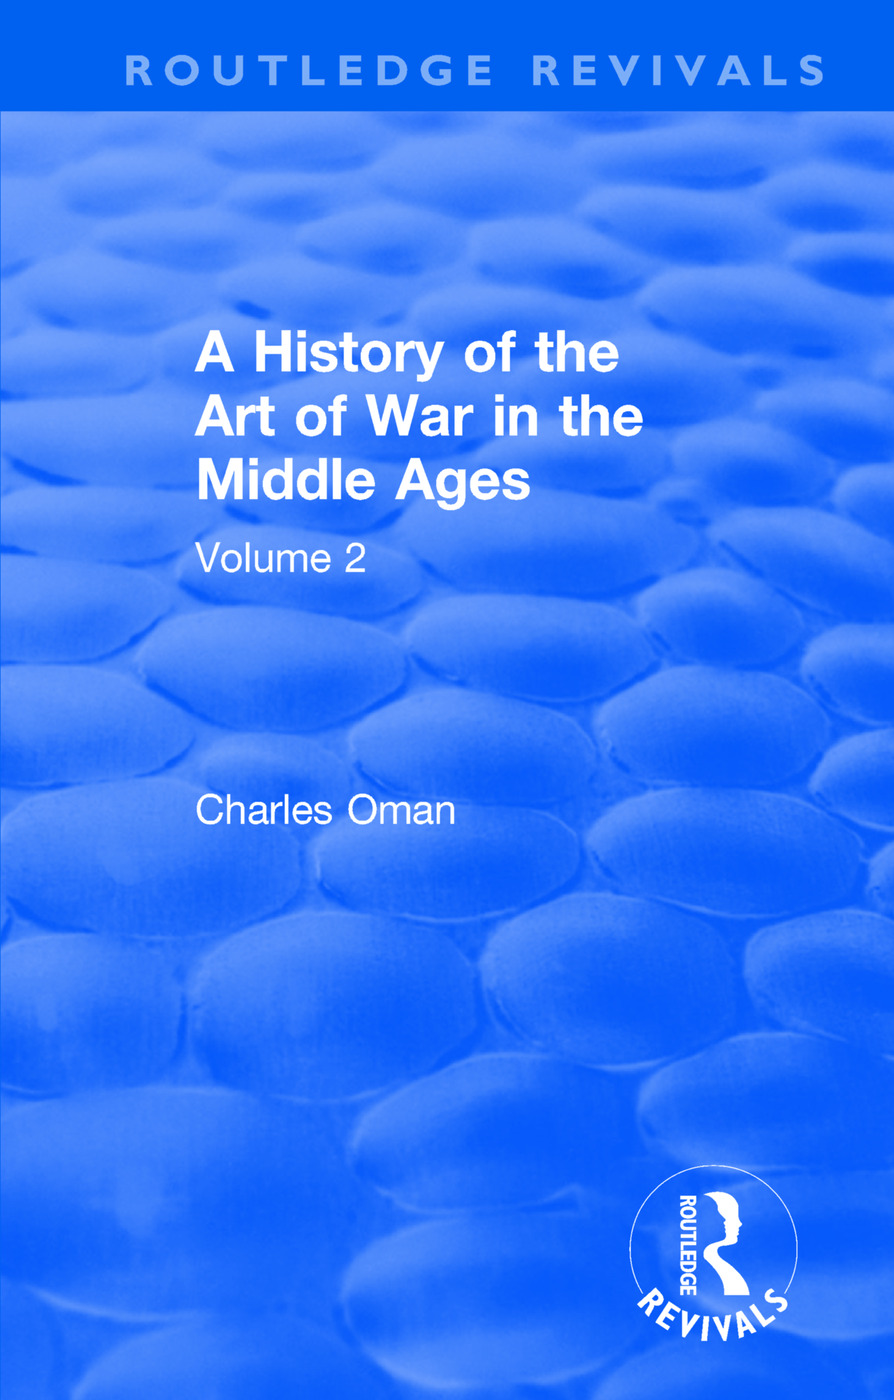 Routledge Revivals: A History of the Art of War in the Middle Ages (1978)